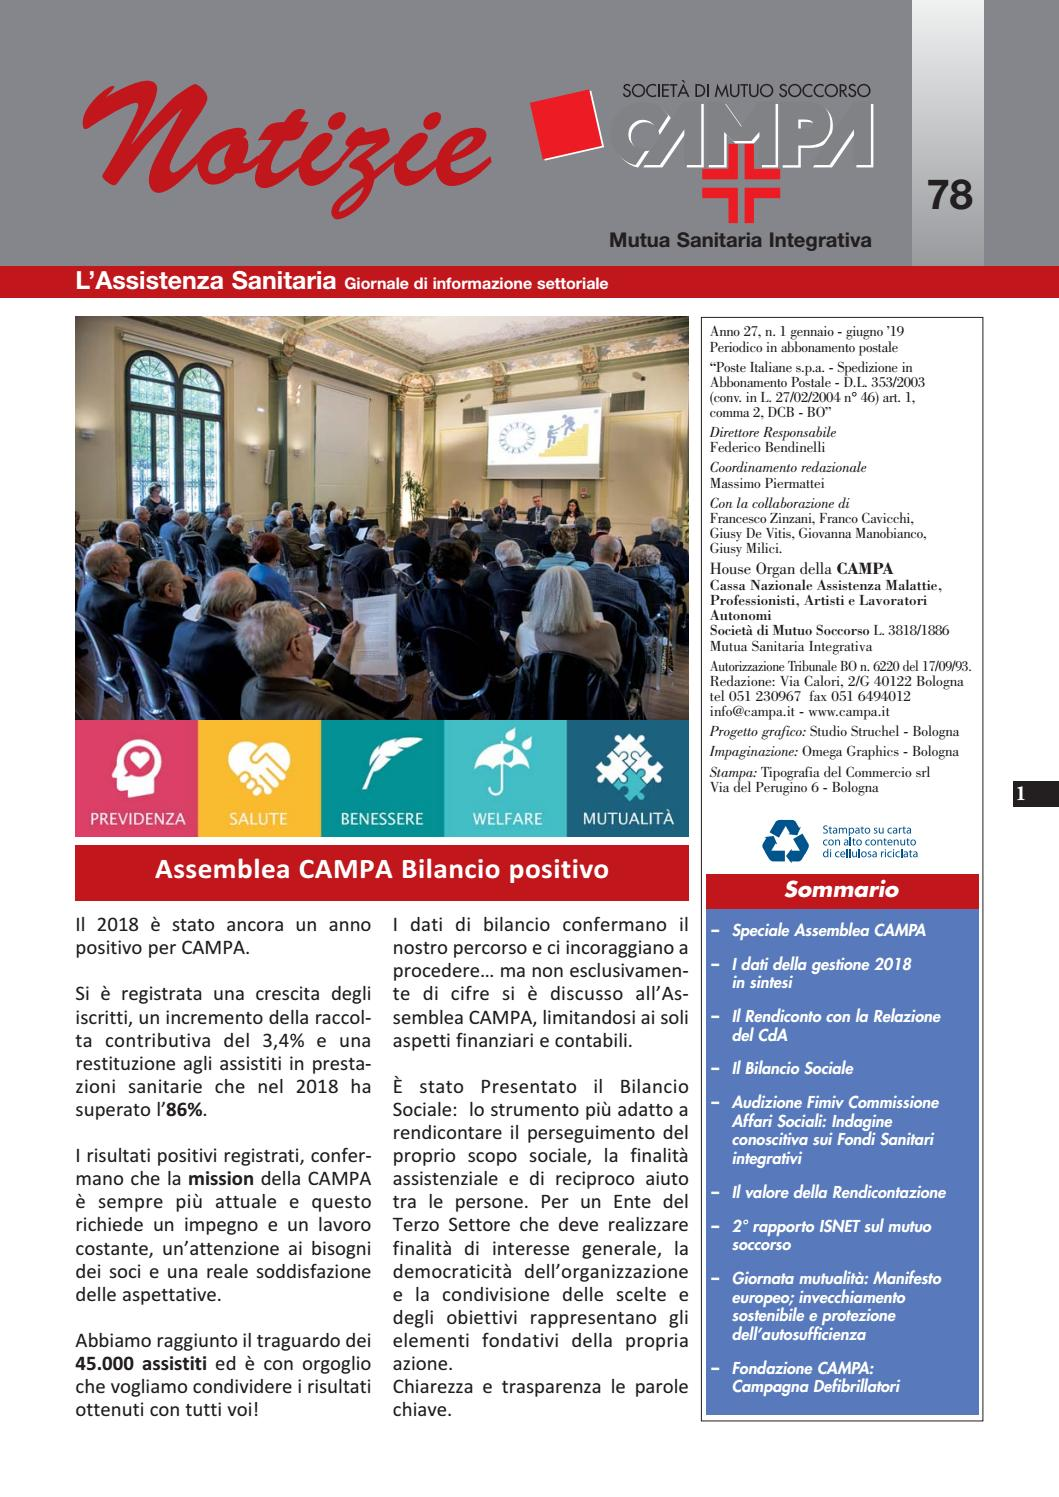 Notiziario 78 By Campa Mutua Sanitaria Integrativa Issuu